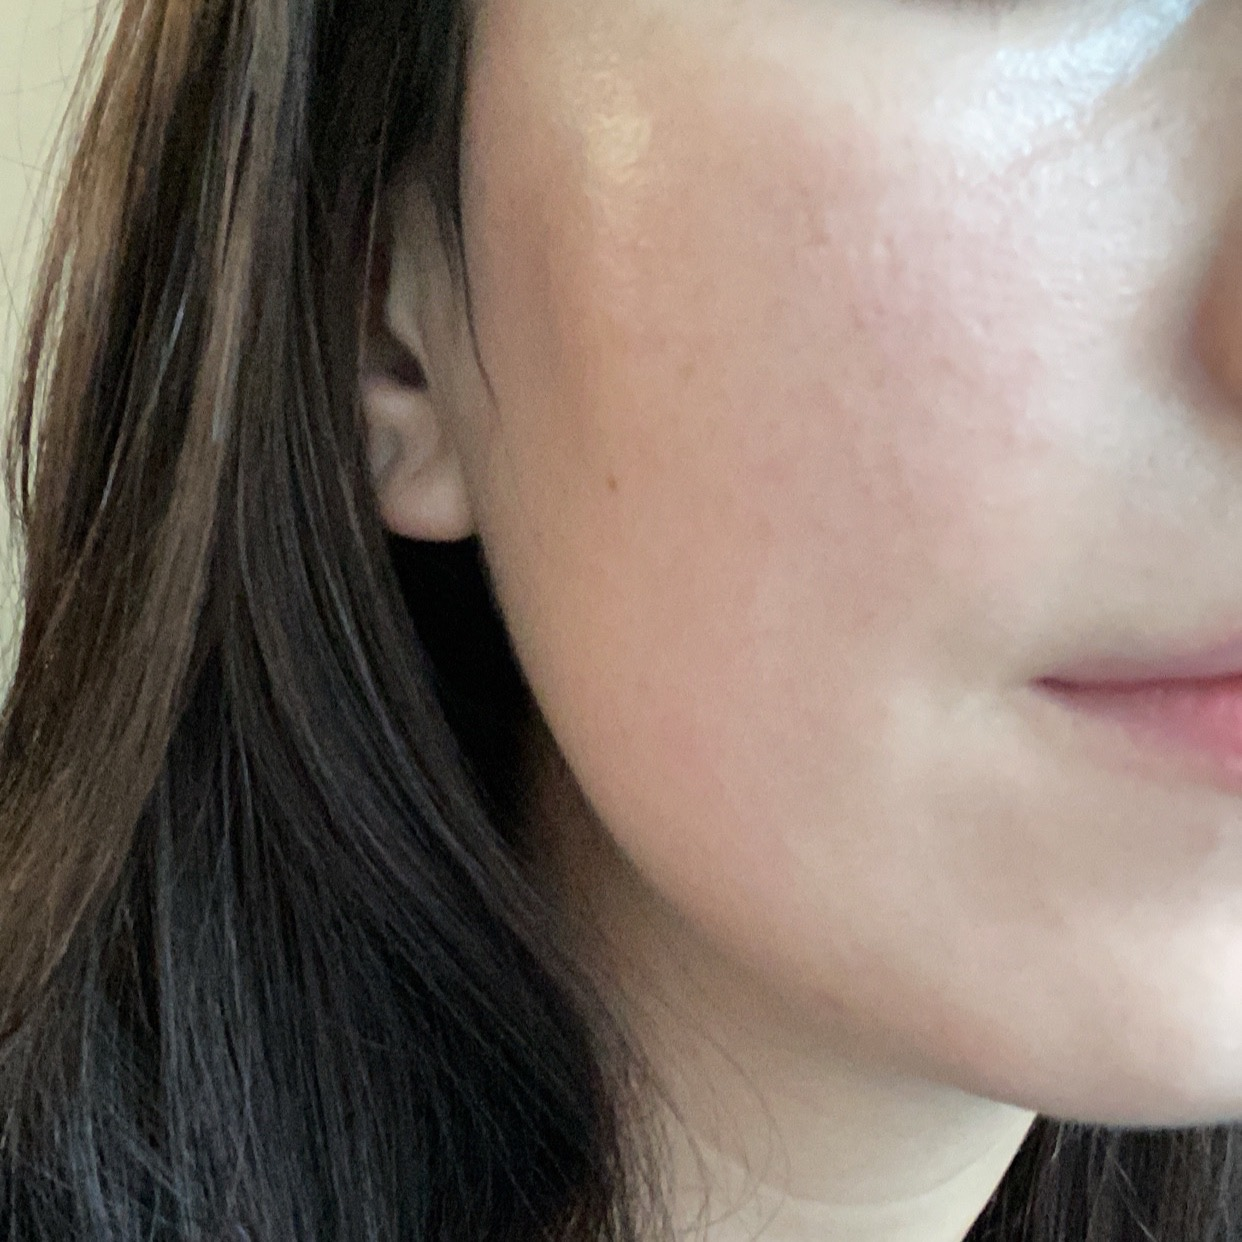 chanel treatment review